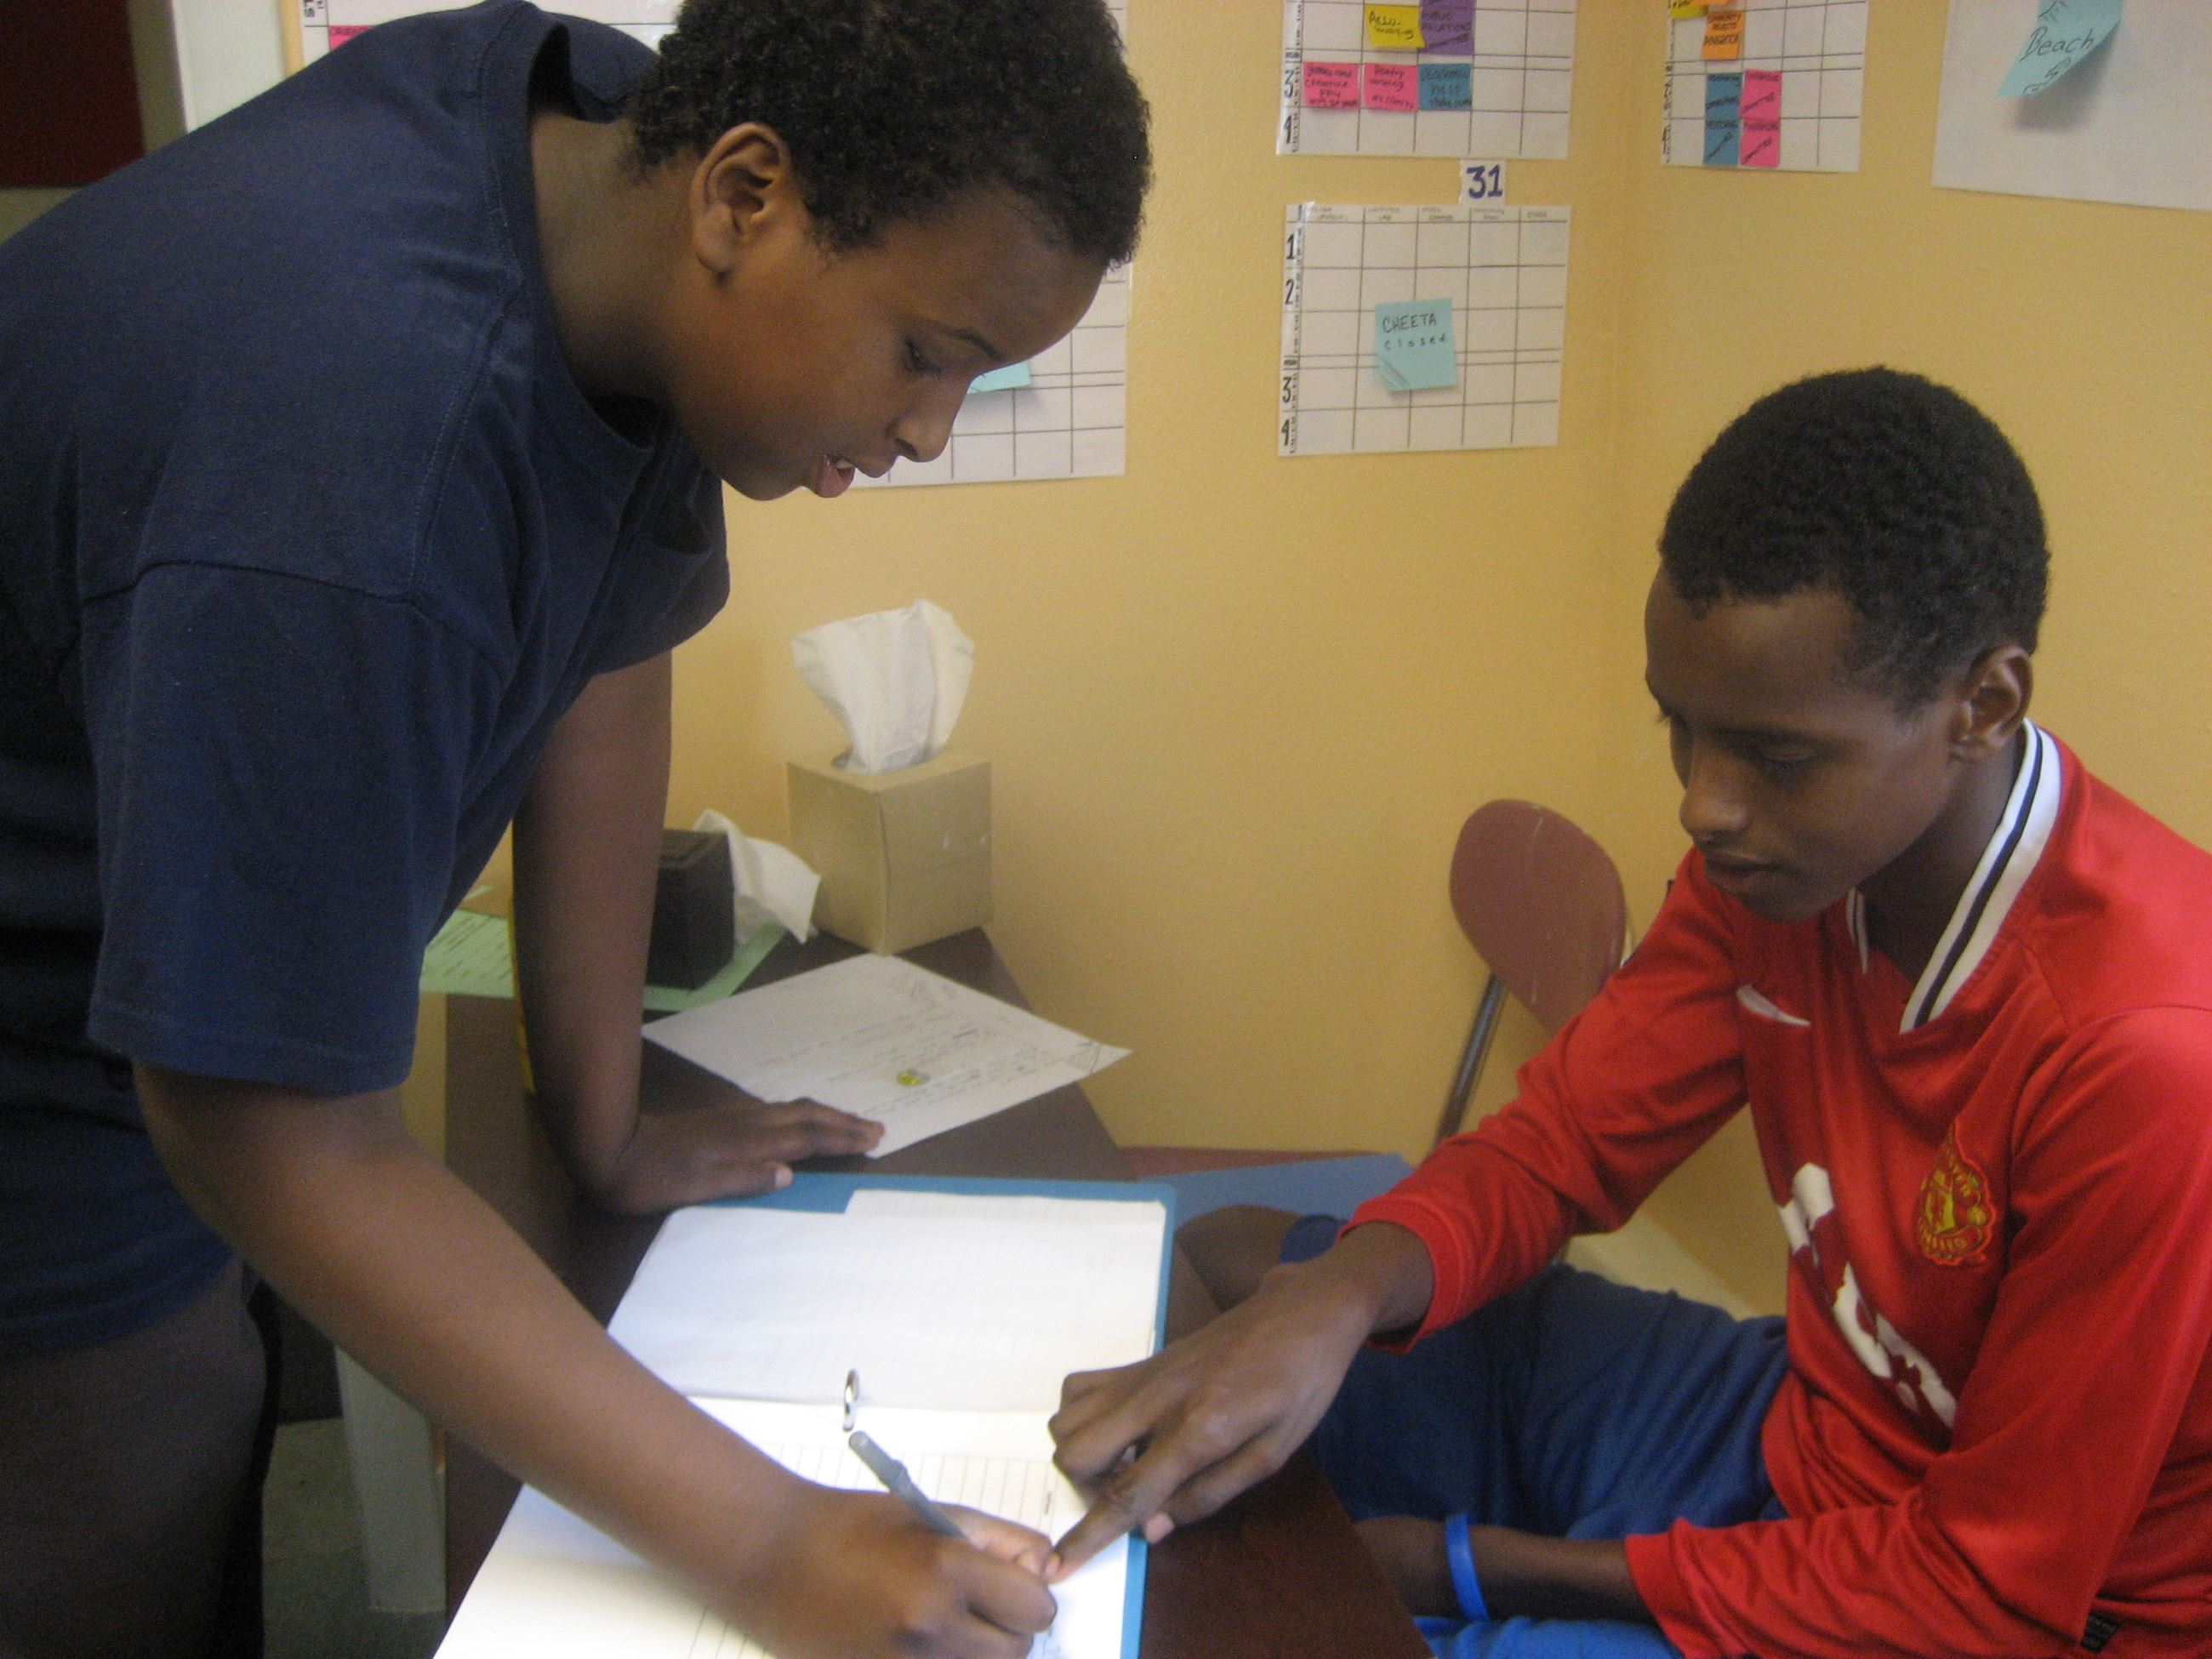 Two Students working together on a homework assignment in the Riverton Park Study Center